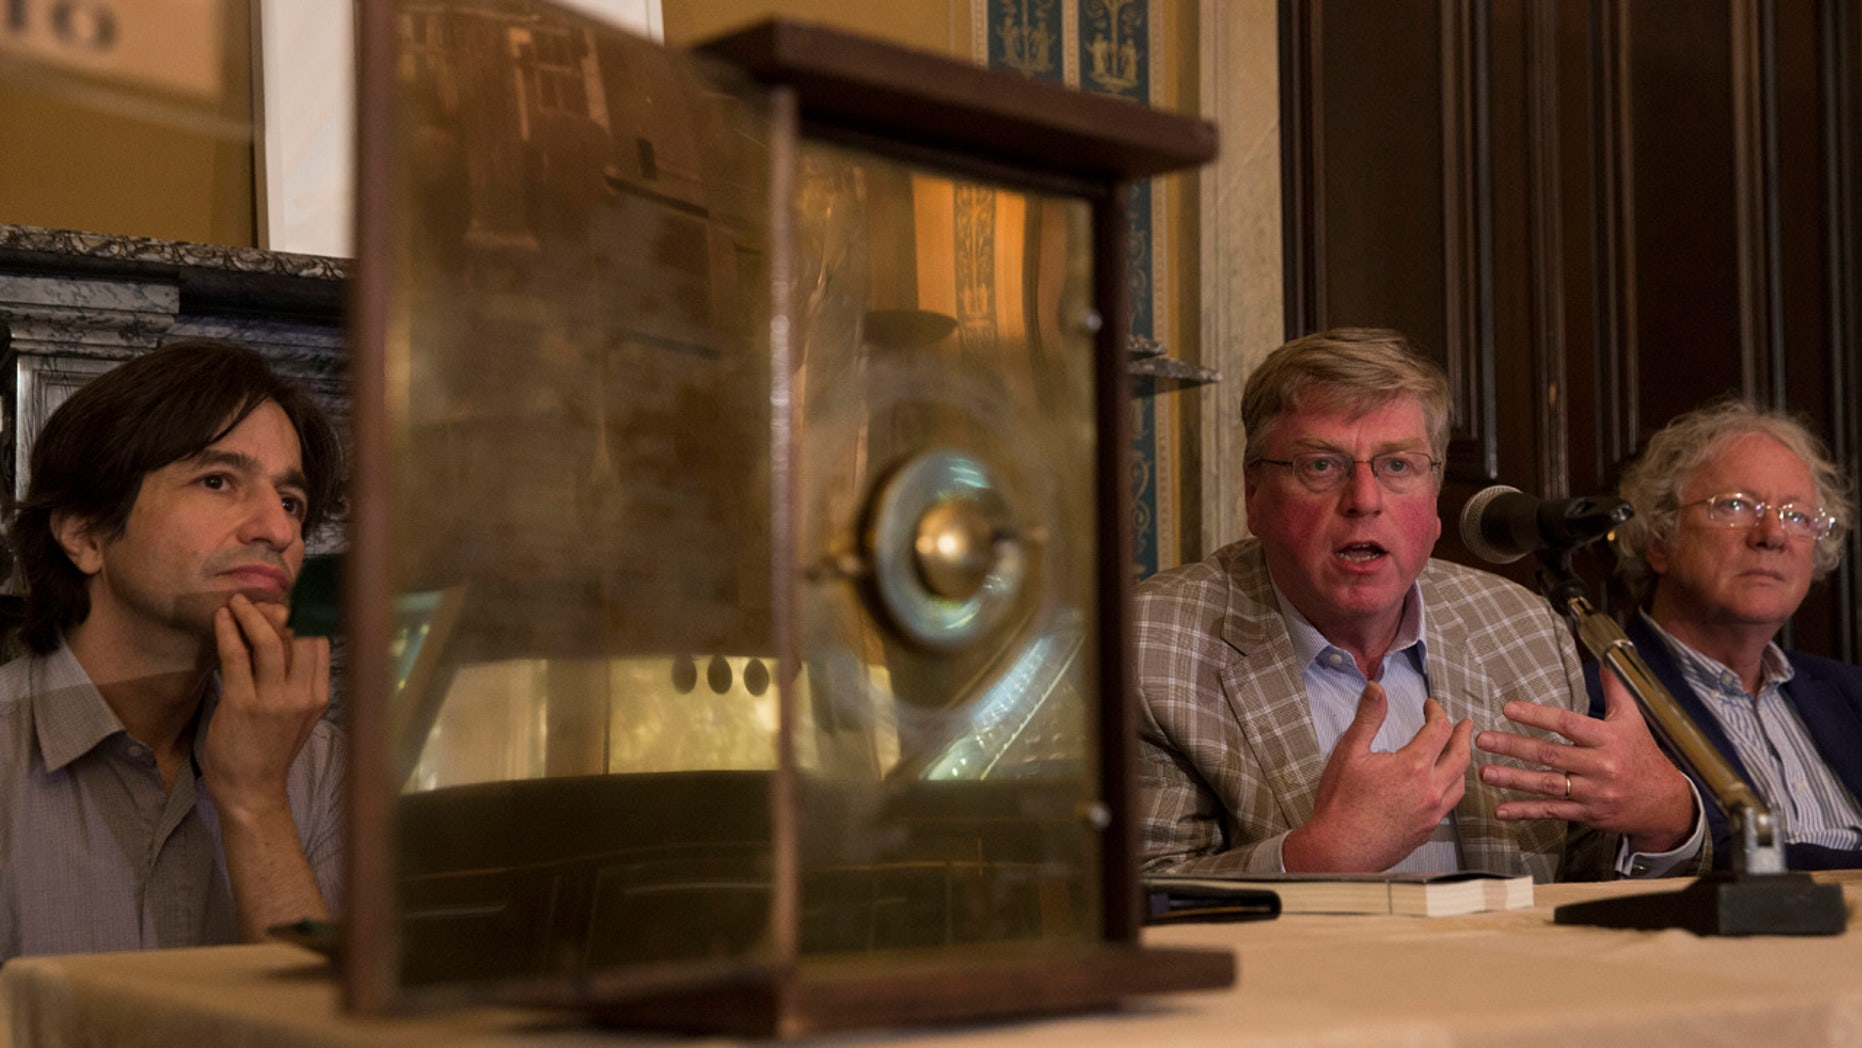 June 9, 2016: Alexander Jones, center, Mike Edmunds, right, and Yanis Bitsakis sit behind a possible reconstruction of the more than 2,000-year-old Antikythera Mechanism during a press conference in Athens